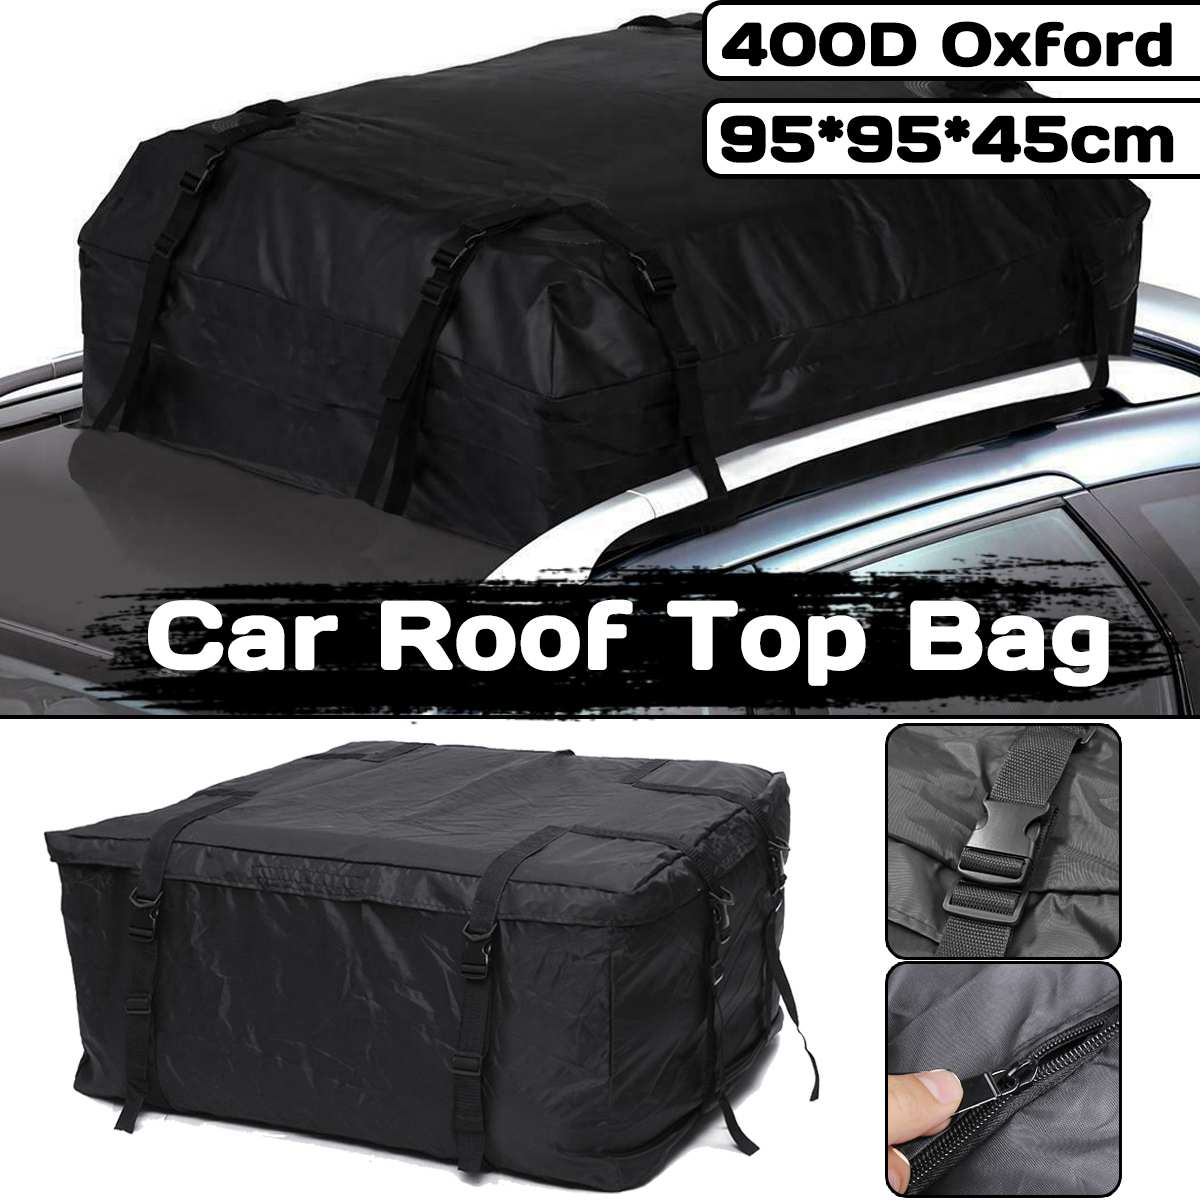 2 Style Waterproof Reinforce Car Roof Top Carrier Cargo Luggage Travel Bag Storage Bag For Vehicles With Roof Rails